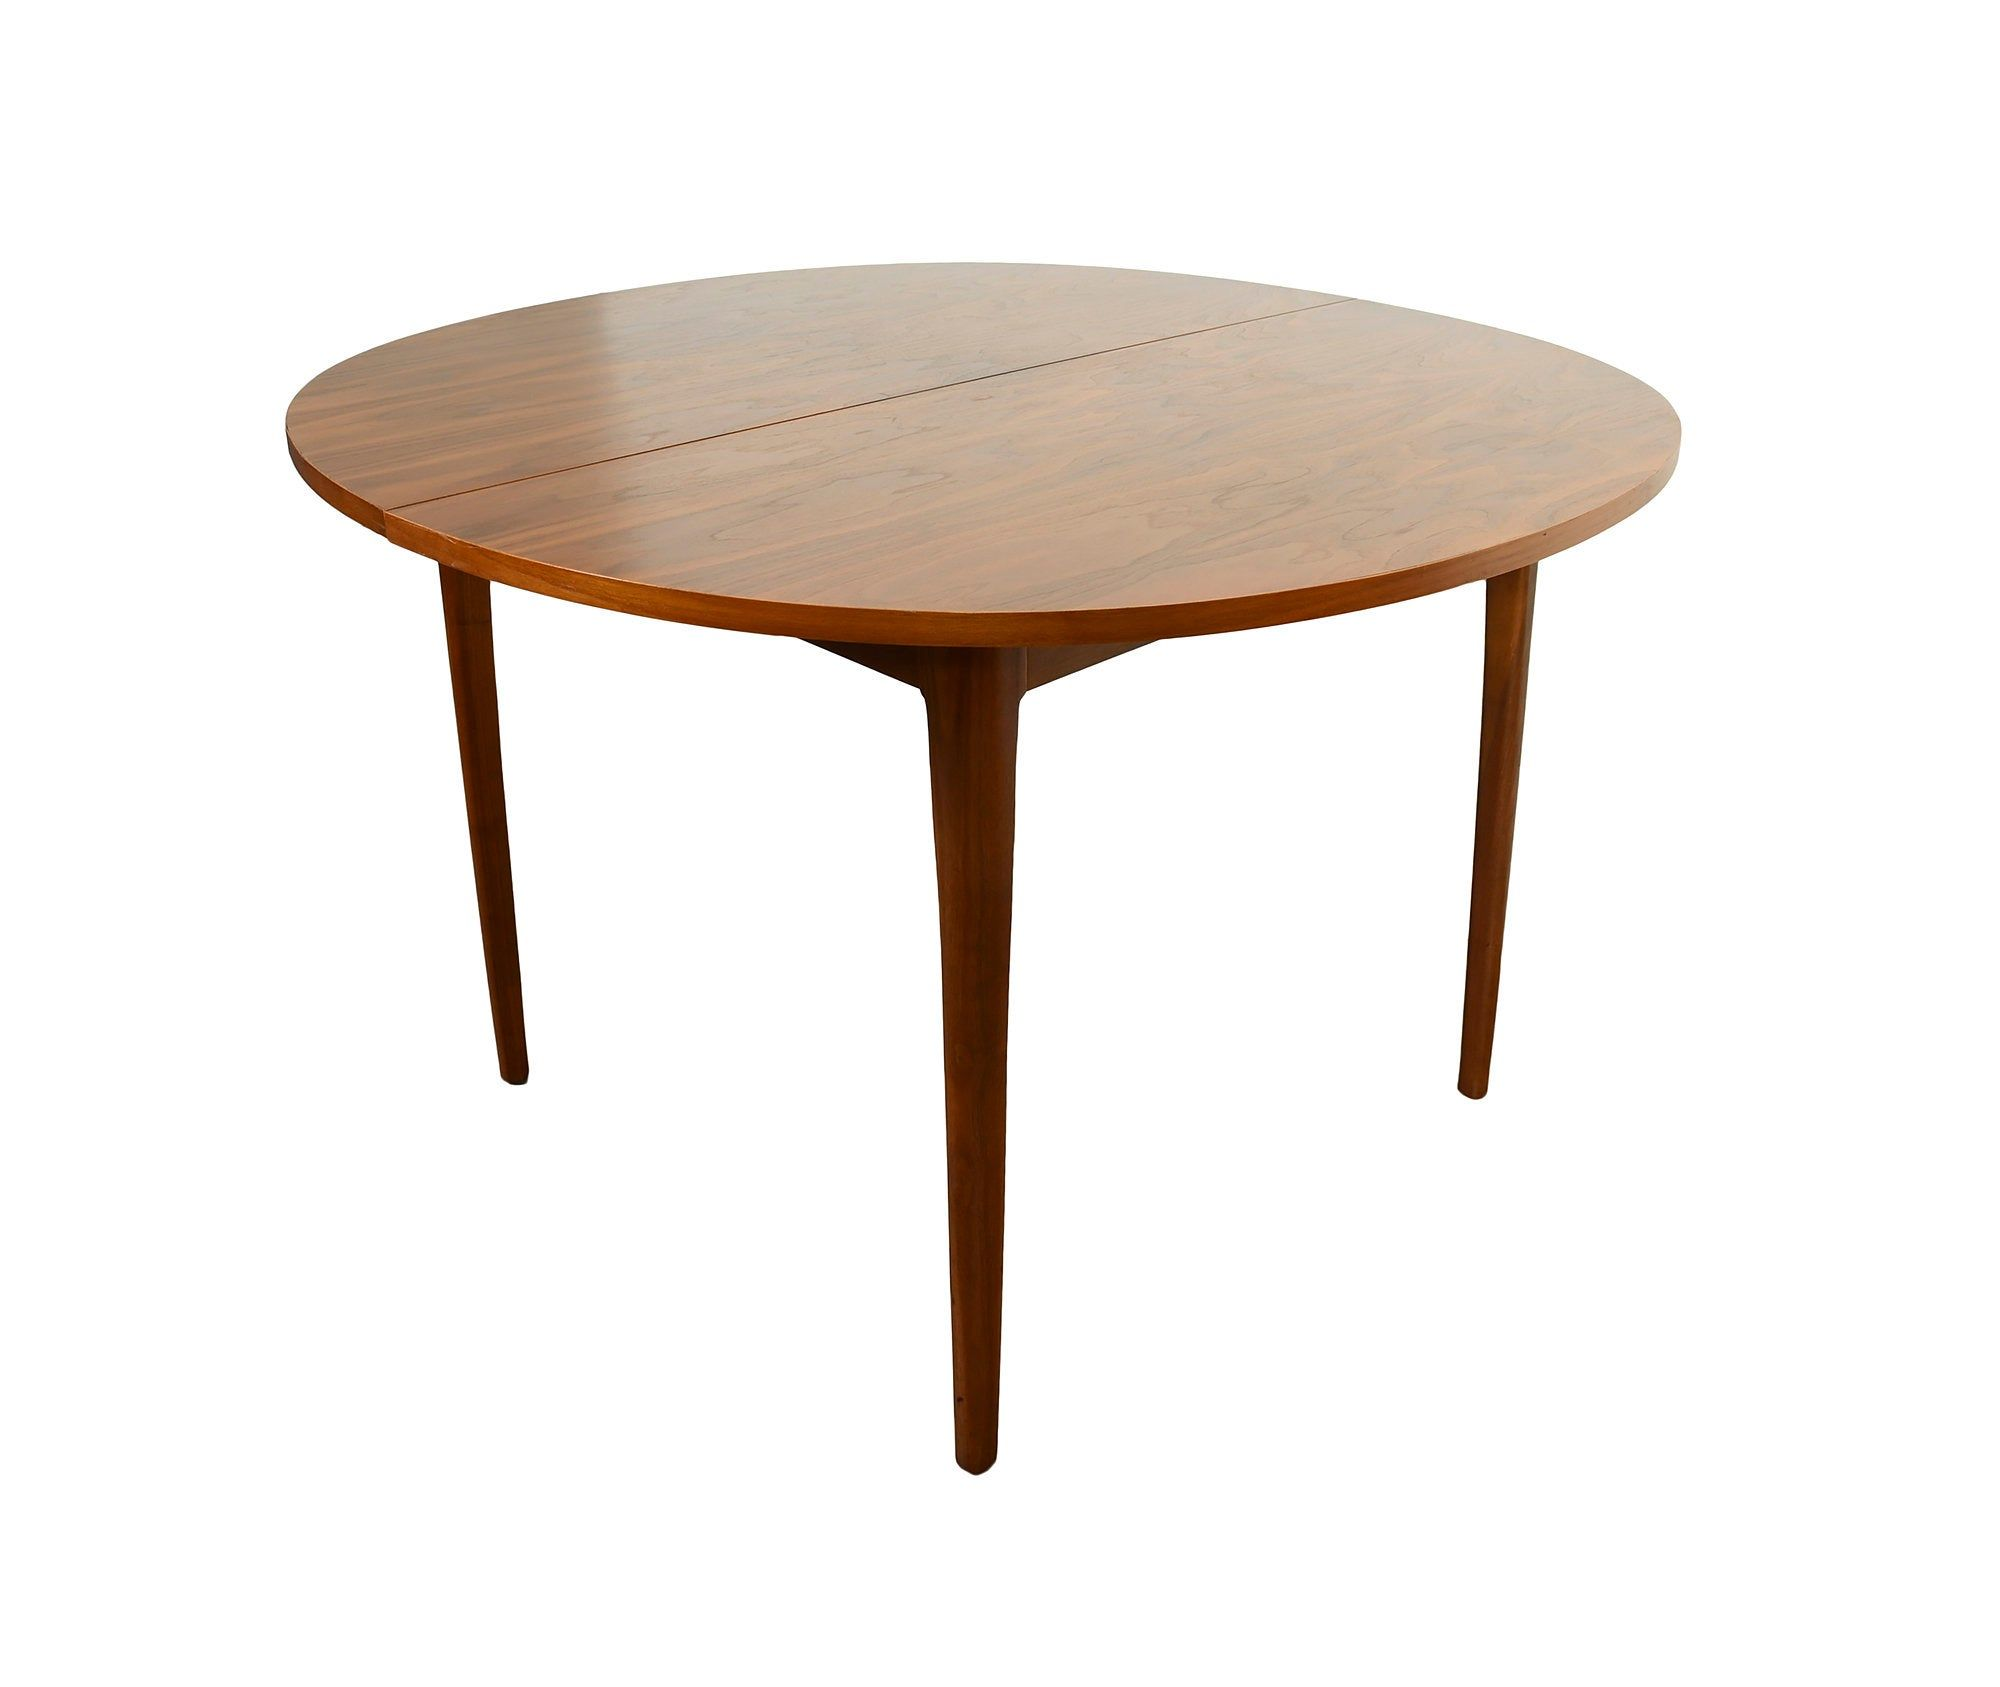 Walnut Dining Table Drexel Declaration Mid Century Modern Round Walnut Table Painted Kitchen Tables Rosewood Dining Chairs Glass Side Tables